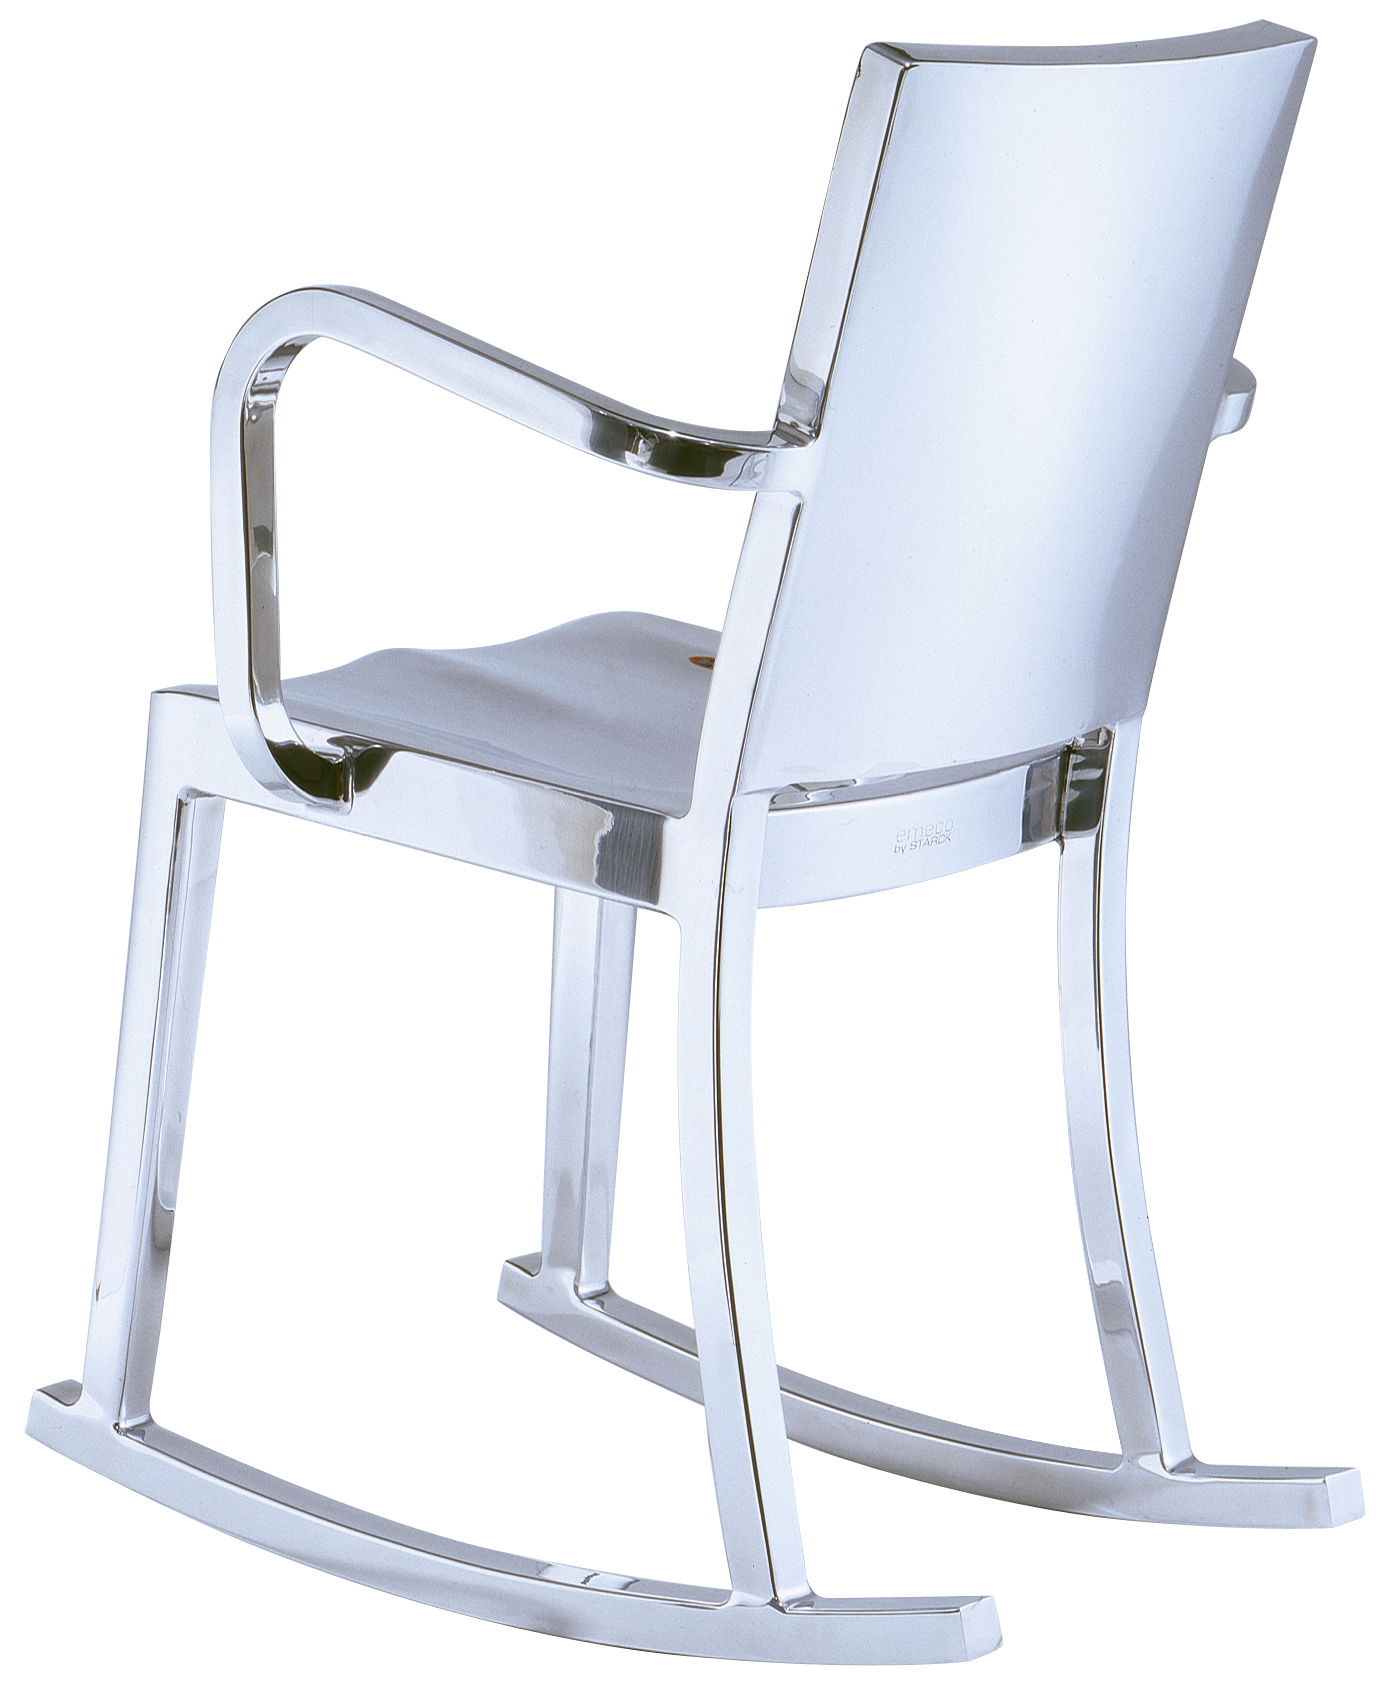 Furniture - Armchairs - Hudson Indoor Rocking chair by Emeco - Polished aluminium - Aluminium poli recyclé